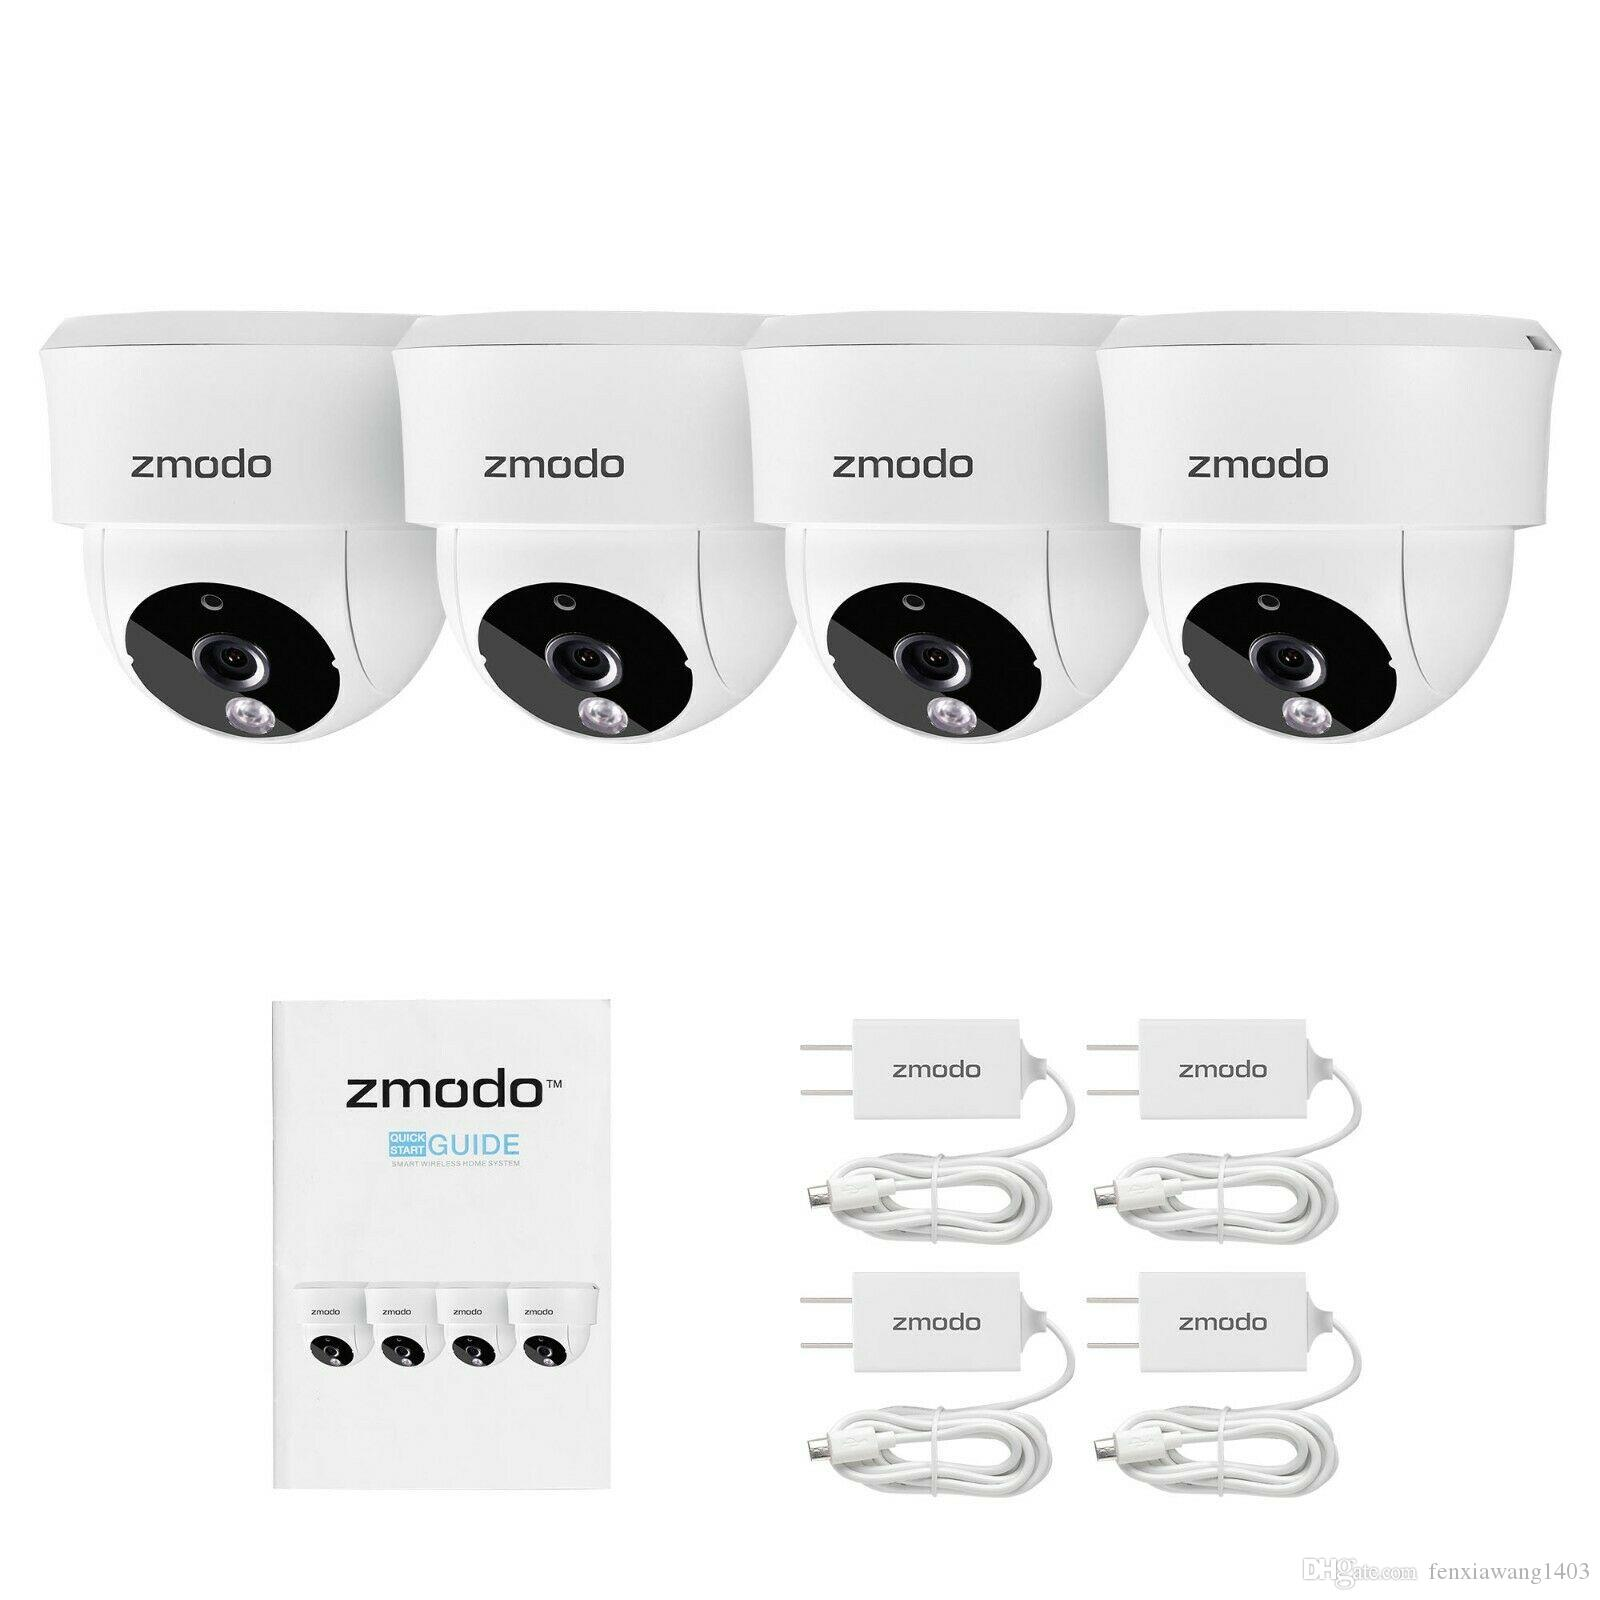 Zmodo Wireless Home WiFi Security Camera Remote Monitoring Night Vision 4  Pack Ip Video Surveillance Camera Ip Web Camera From Fenxiawang1403,  $10 05 